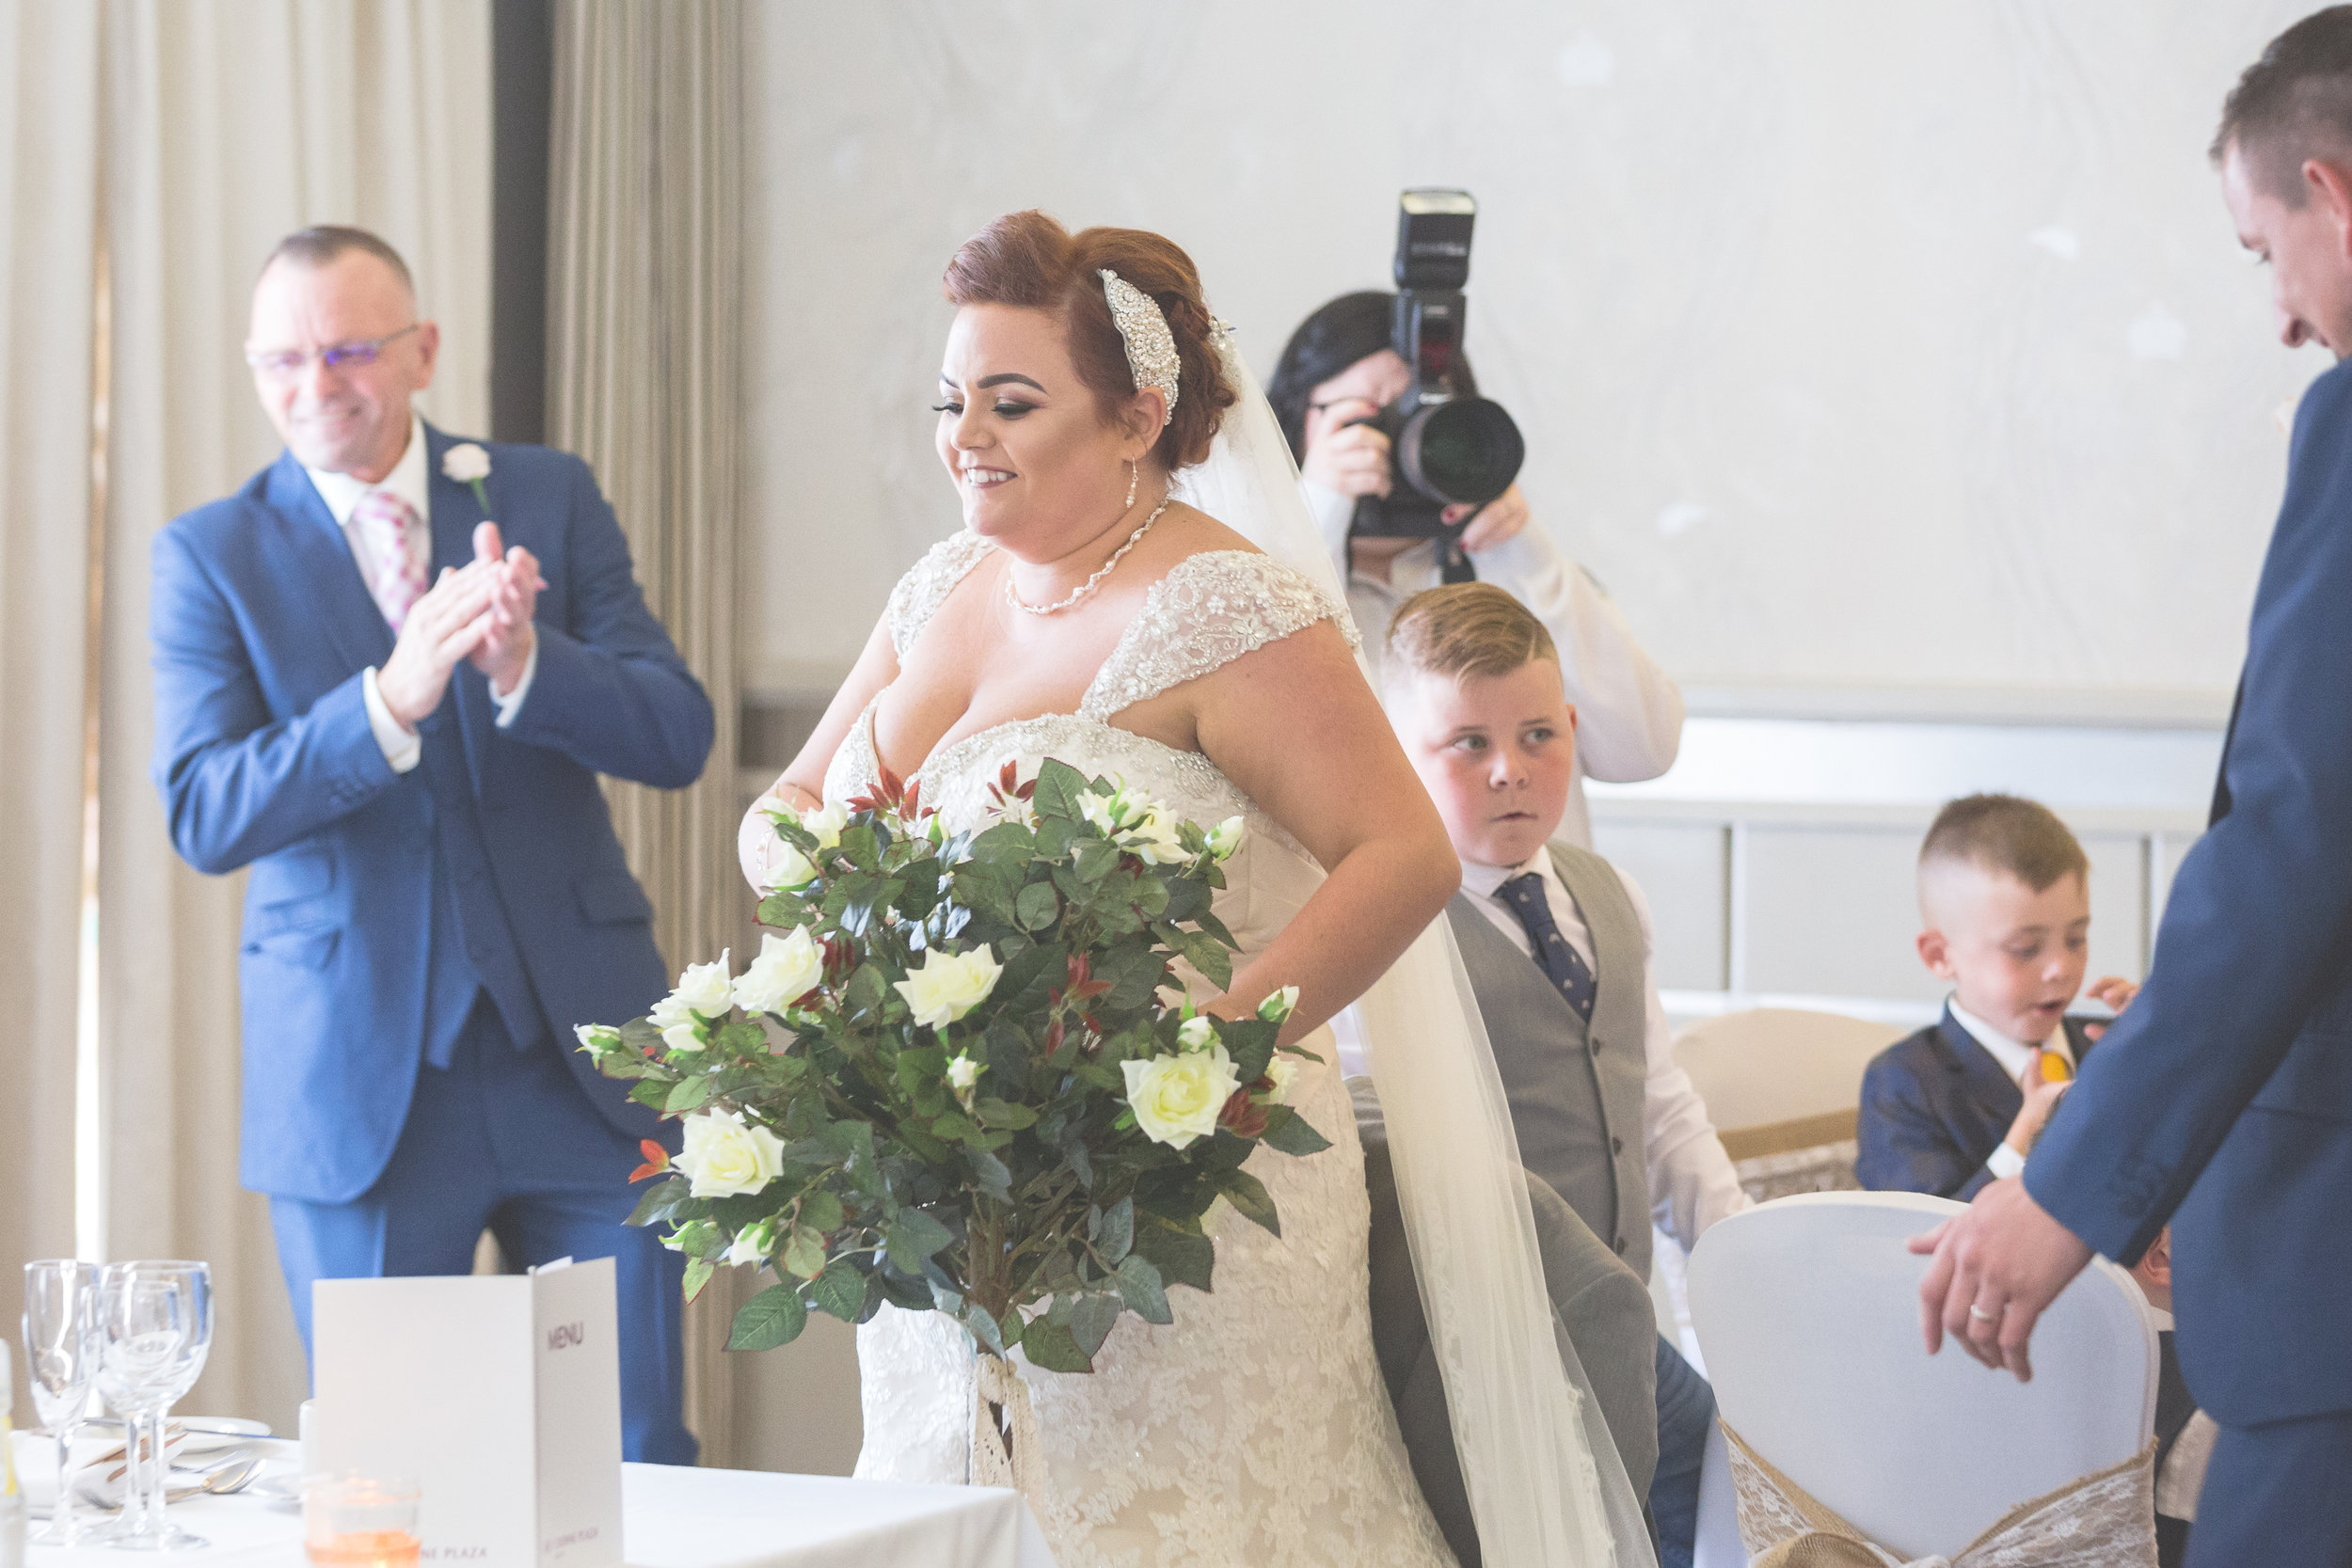 Antoinette & Stephen - Speeches | Brian McEwan Photography | Wedding Photographer Northern Ireland 12.jpg